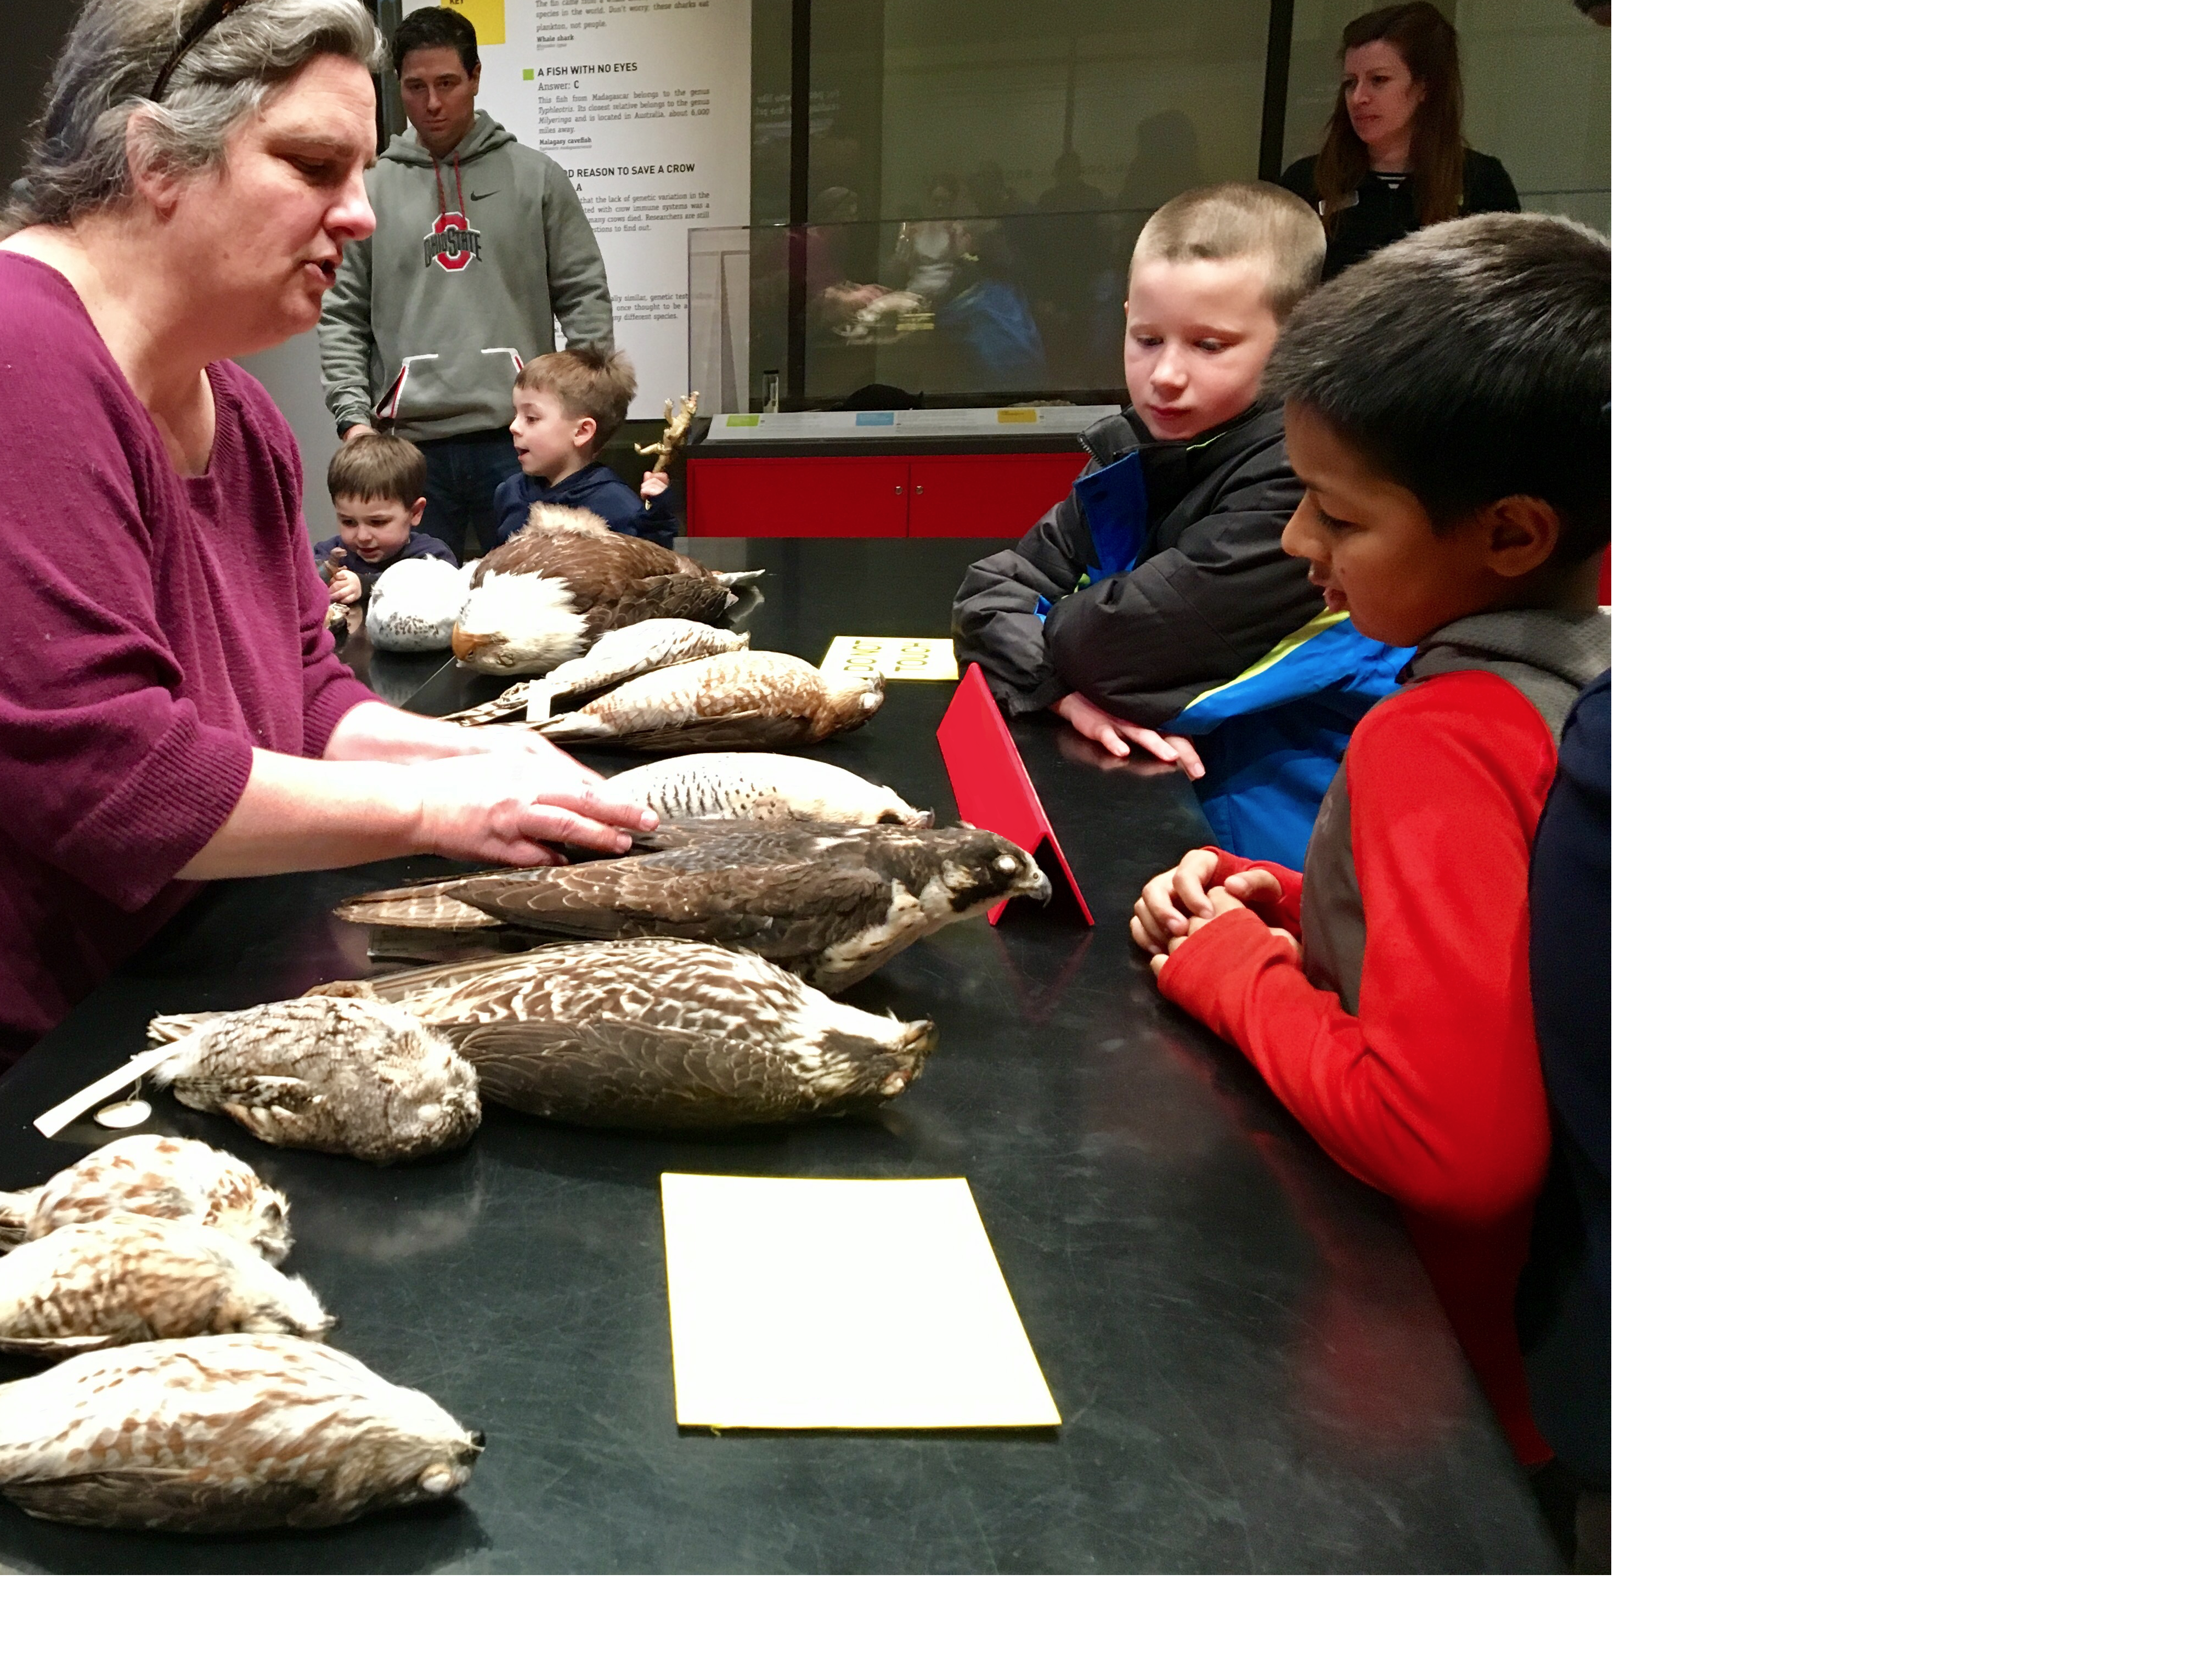 Staff member shows peregrine falcon specimens to two children, while adults look on.